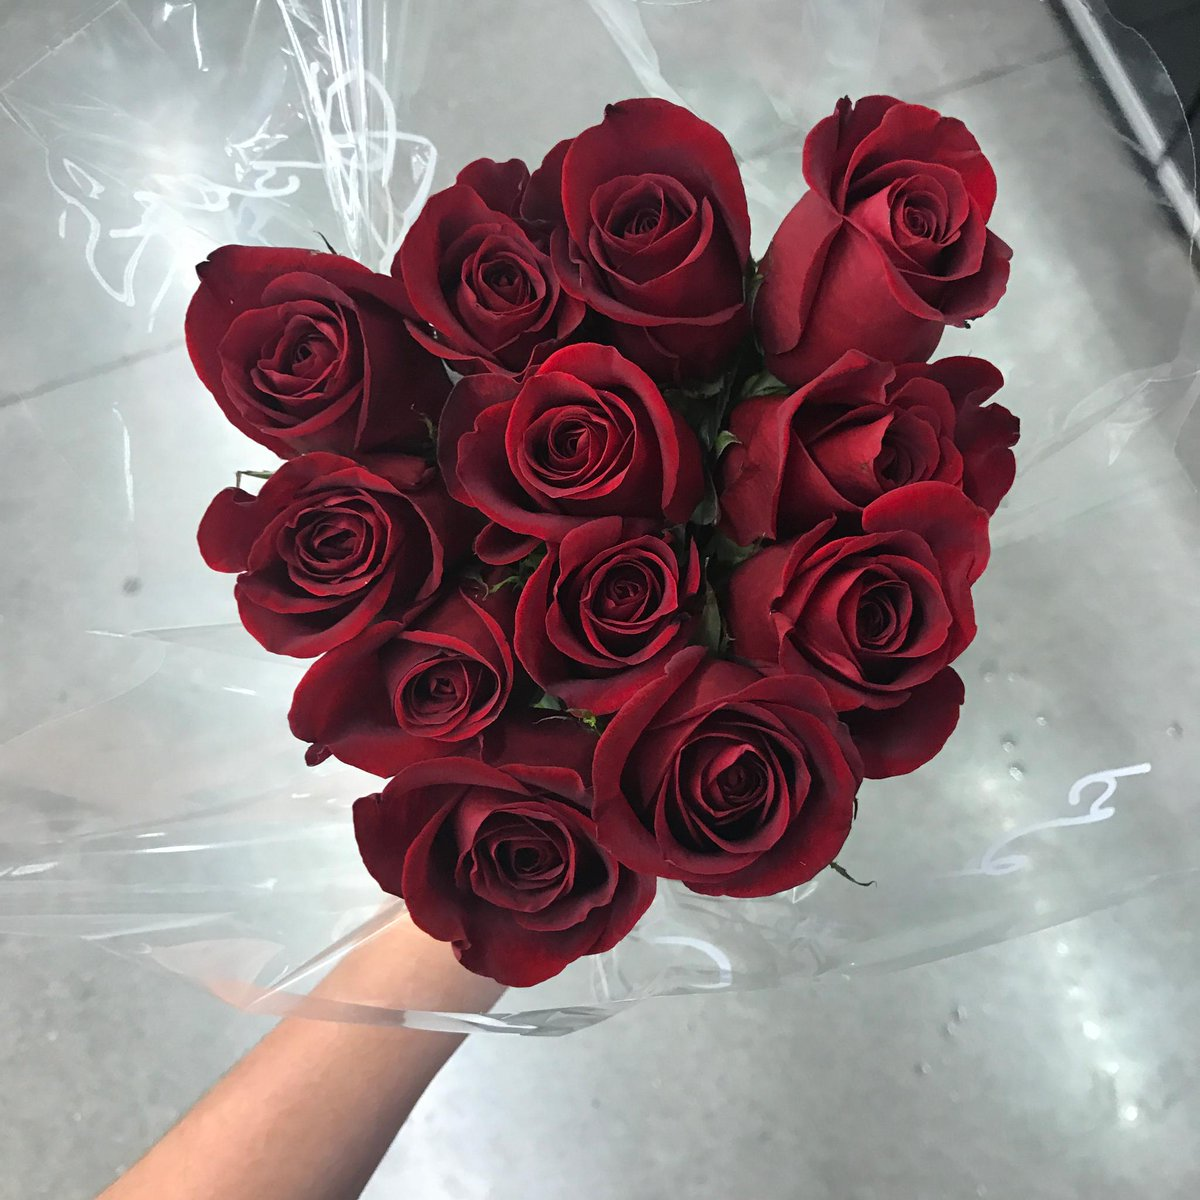 PSA! One dozen wrapped roses are only $19.99. Stop in, grab & go!...